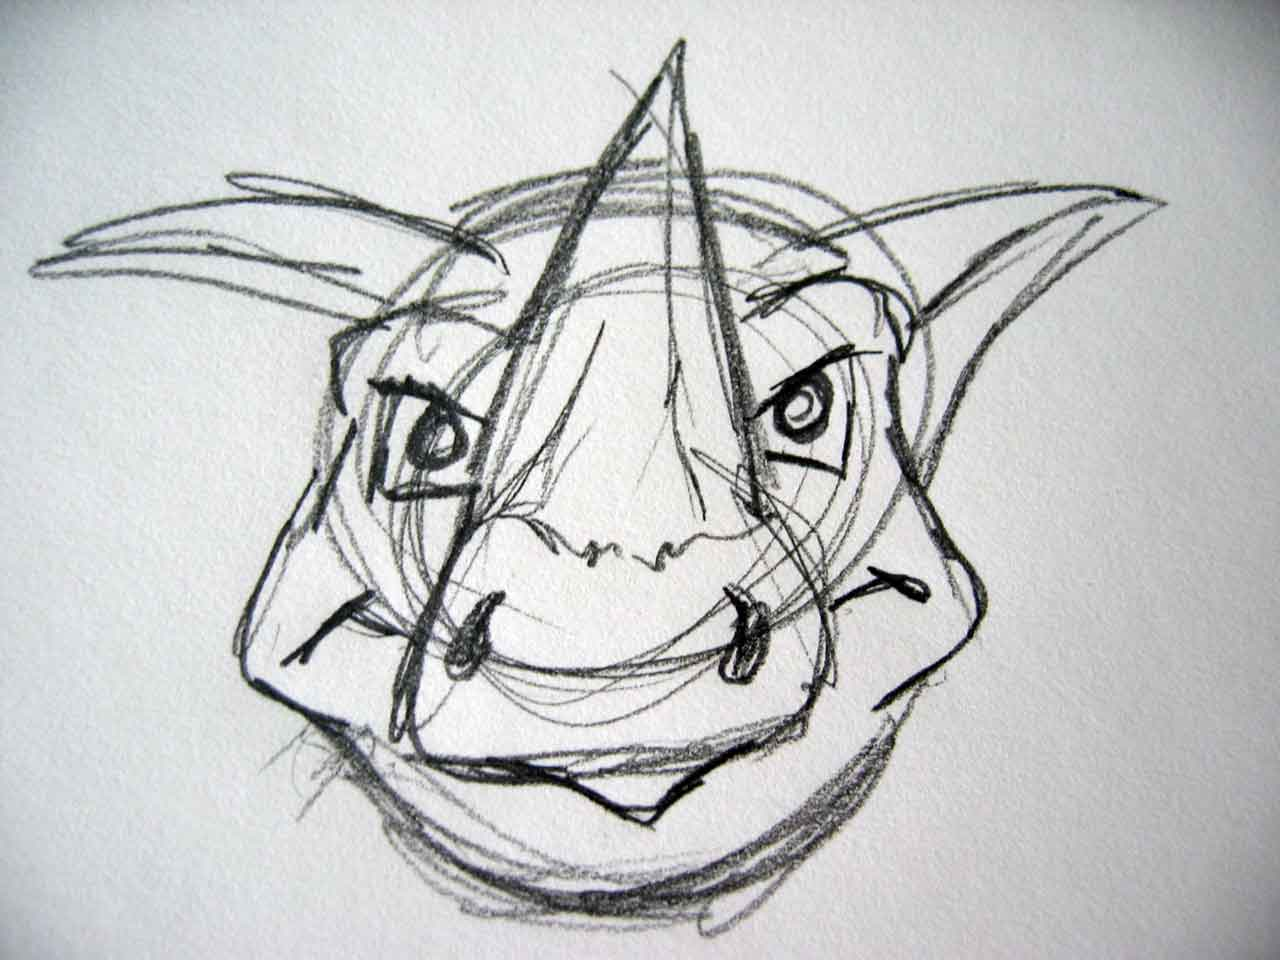 A Rhino Head Sketch, Prepwork for the Sumo Rhino